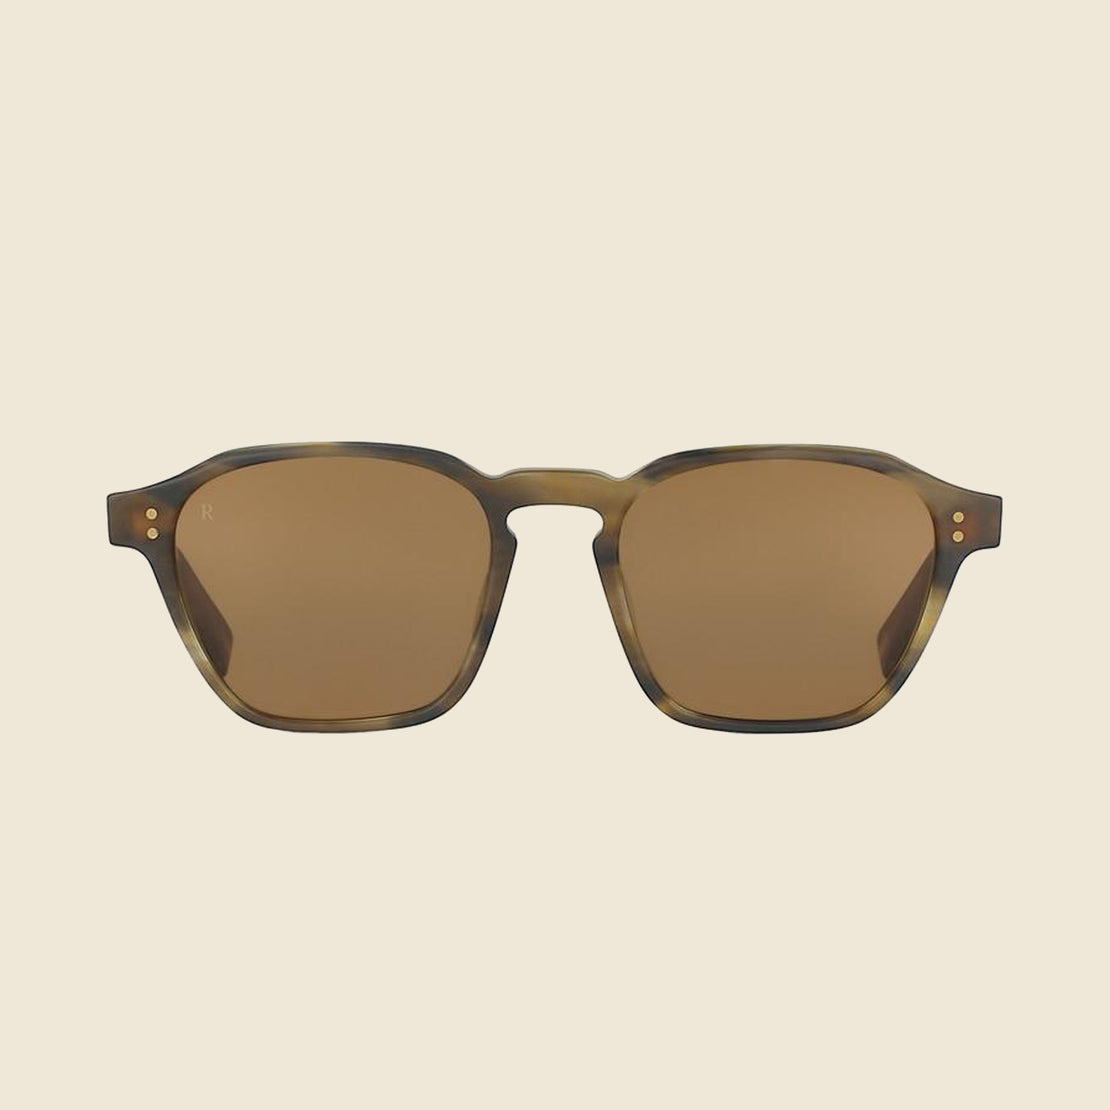 Raen Optics Aren 53mm - Matte Sand Dune/Groovy Bronze